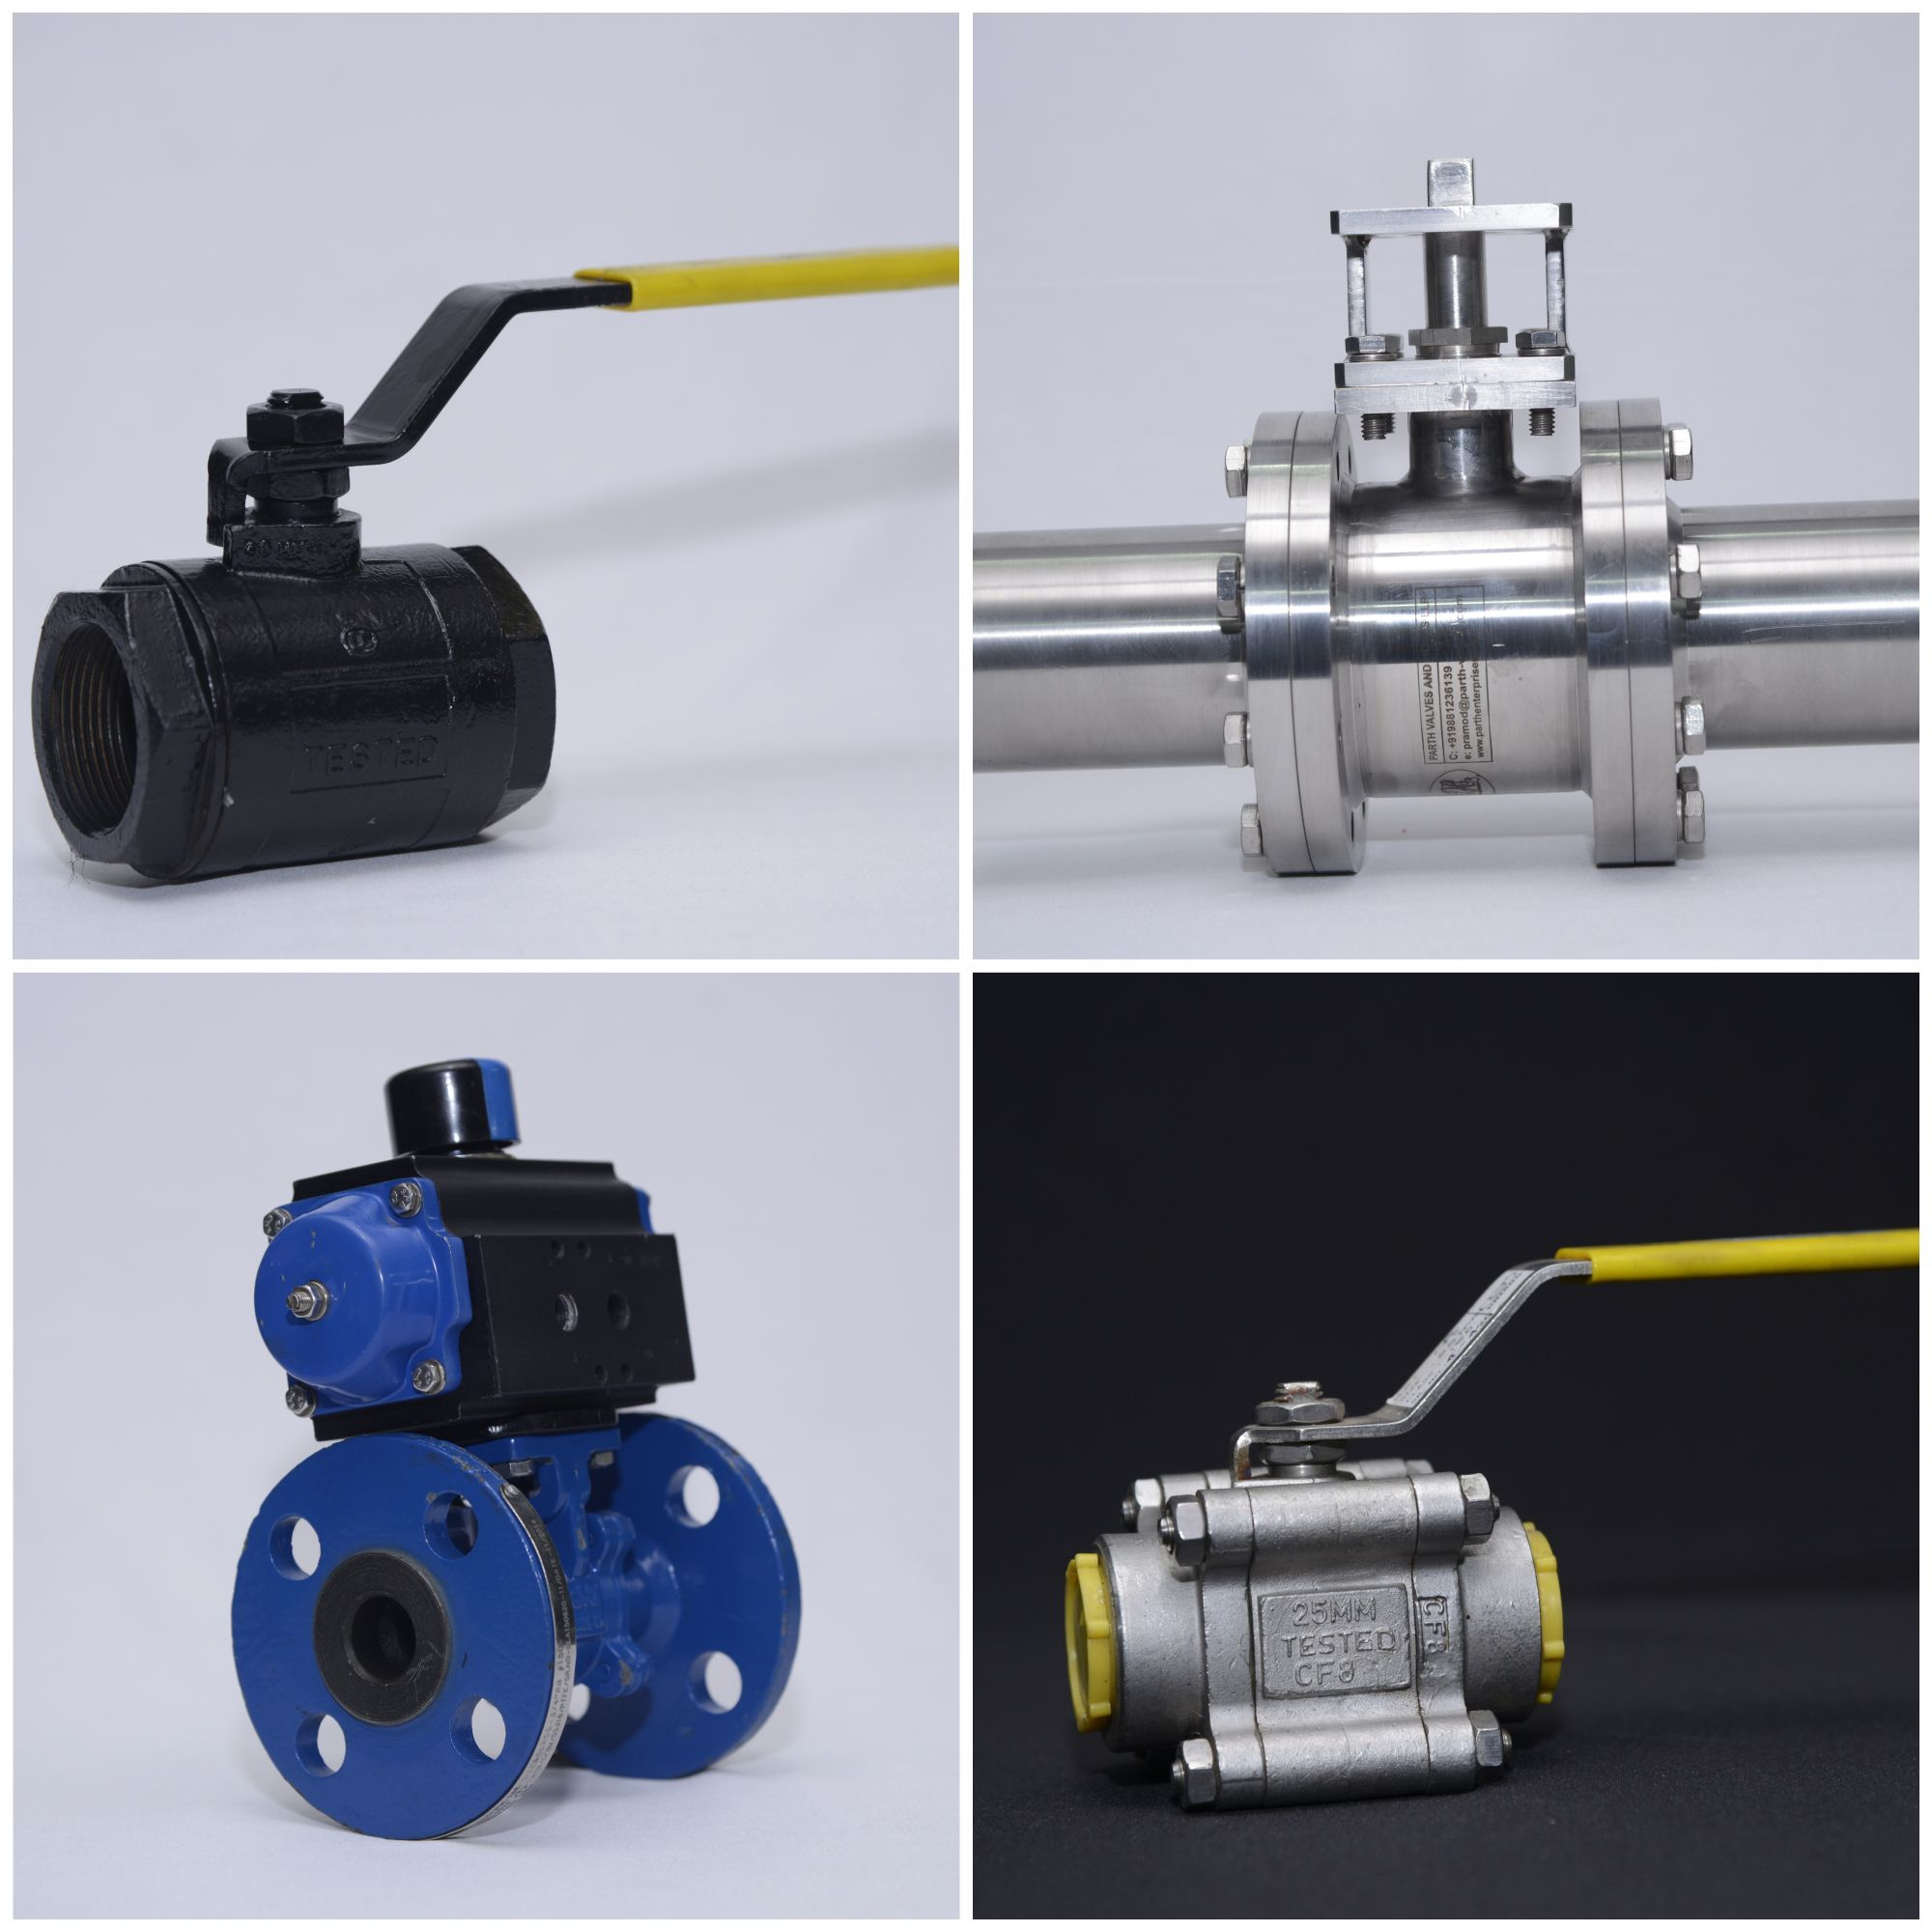 with immense pleasure we, parth valves & hoses llp